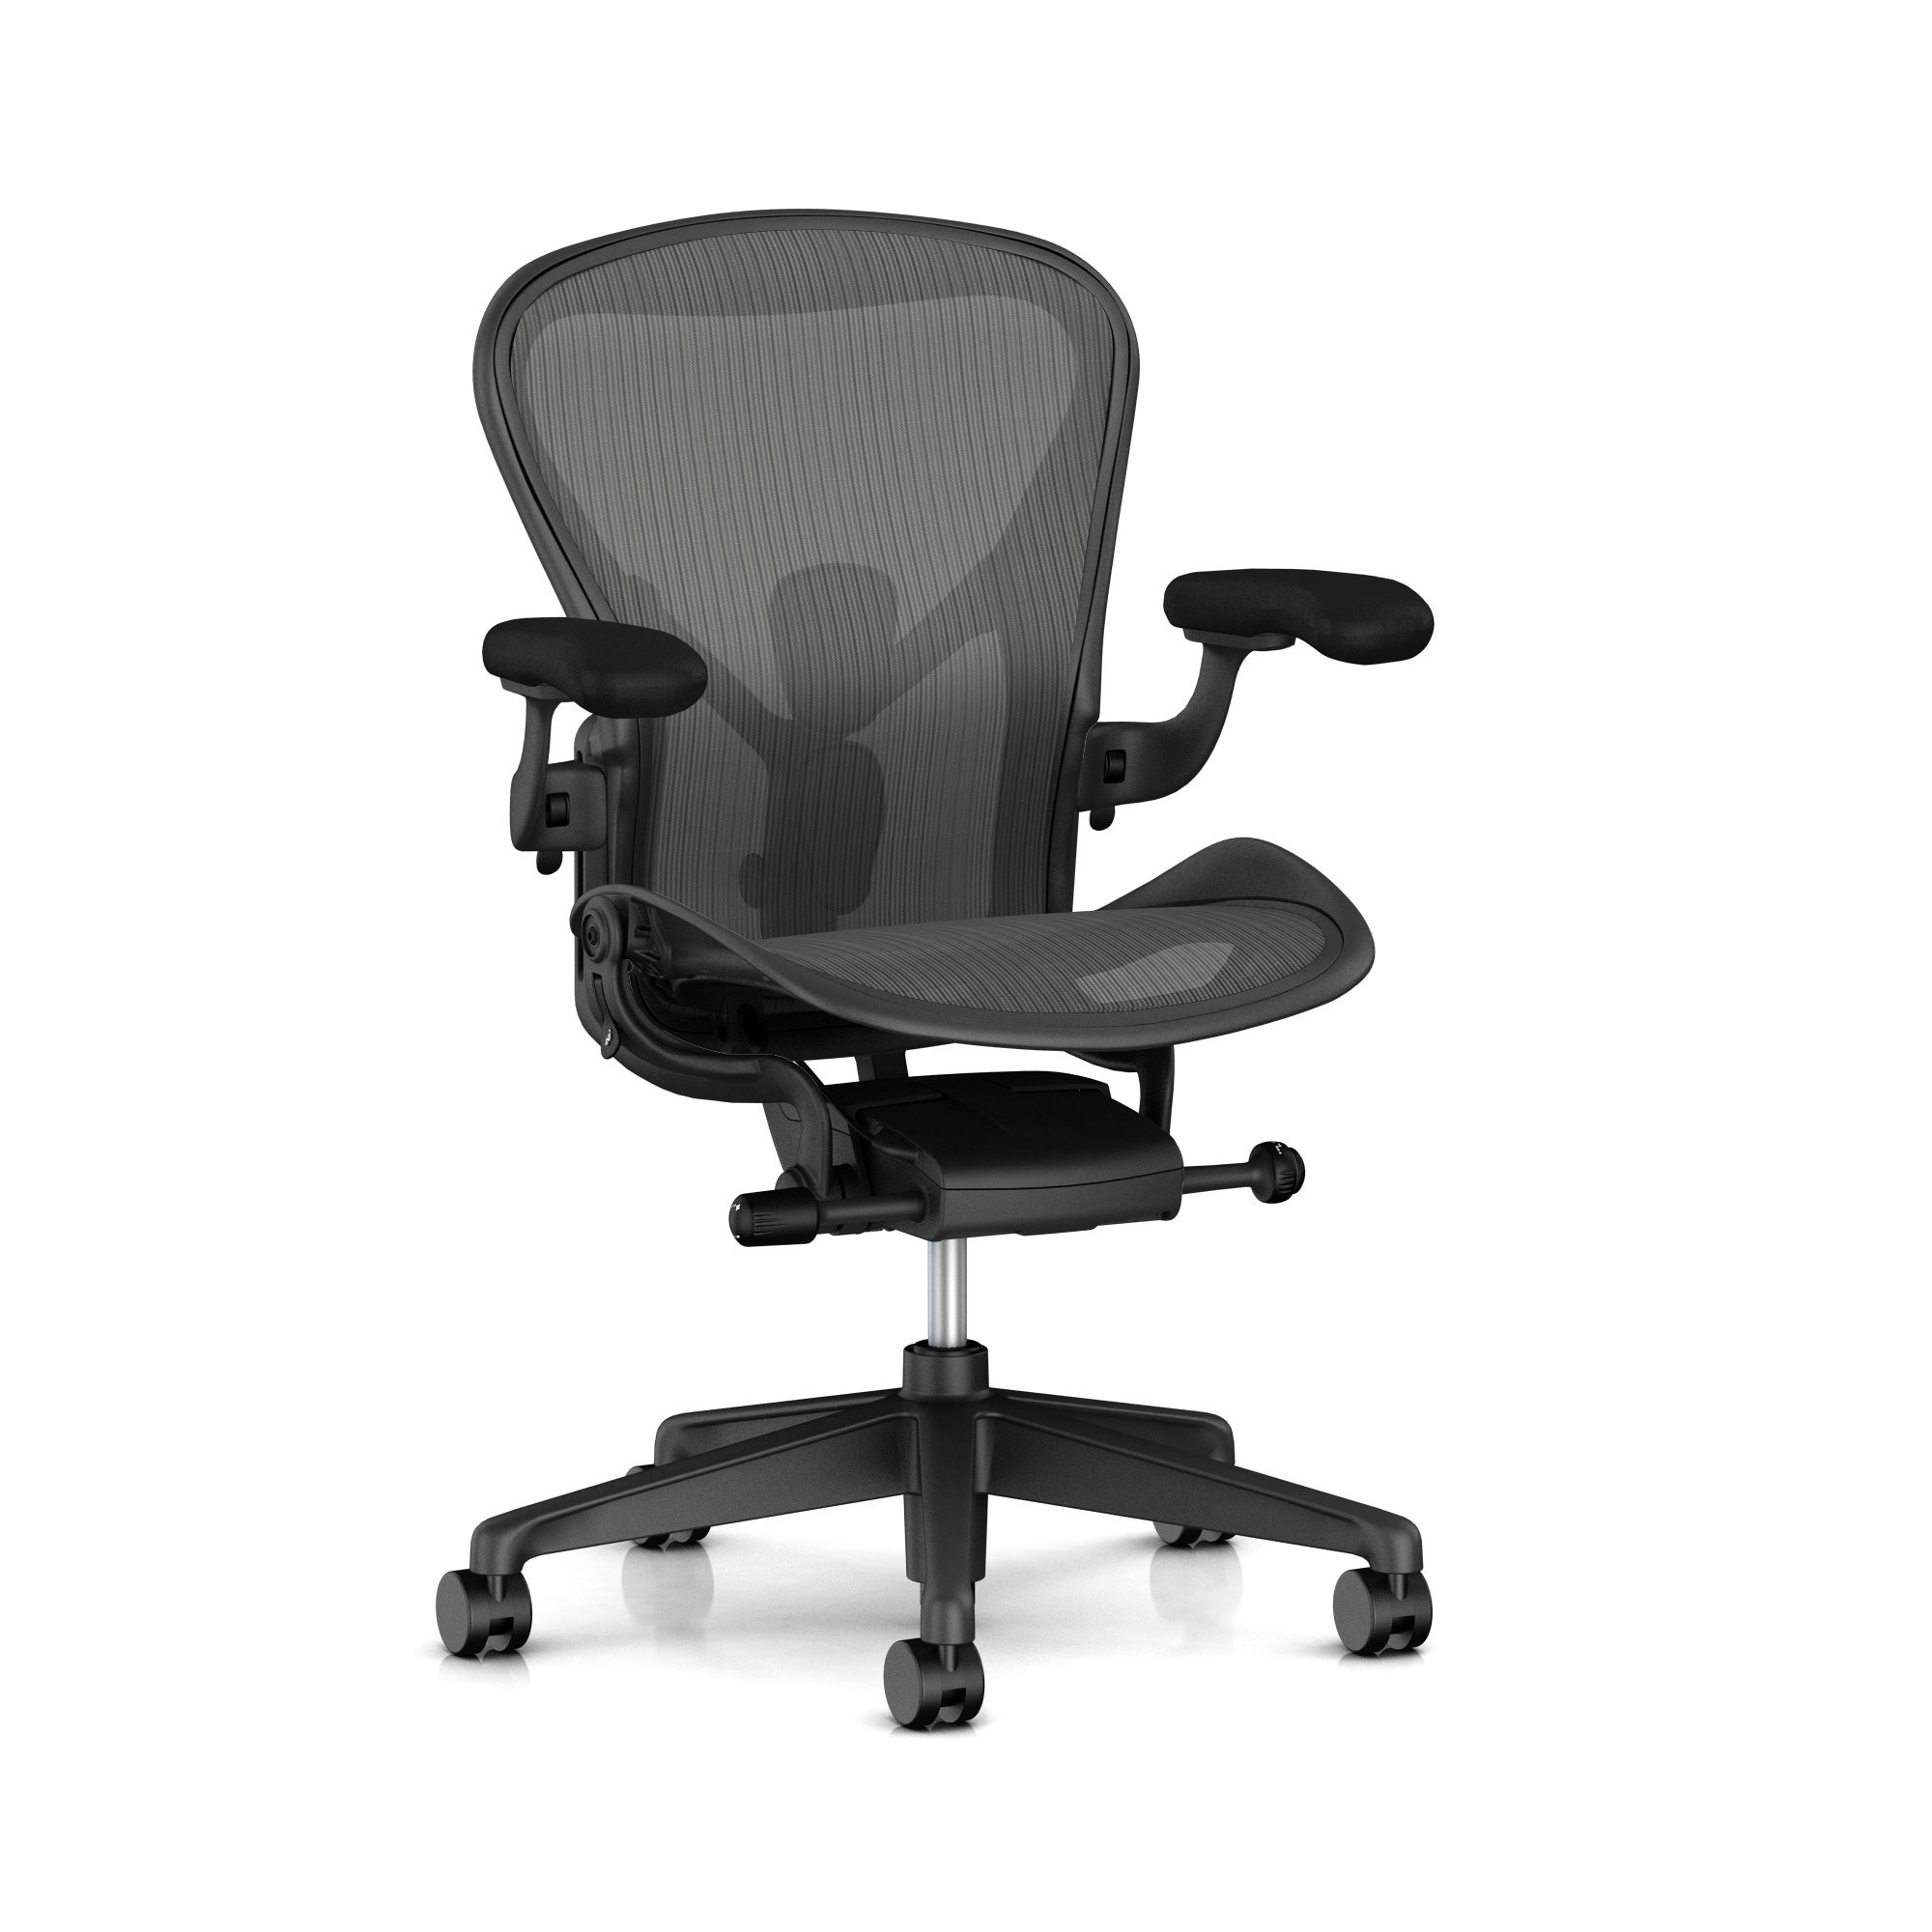 Herman Miller Aeron Ergonomic Office Chair with Tilt Limiter | Adjustable PostureFit SL and Arm Height/Pivot | Medium Size B with Graphite Finish